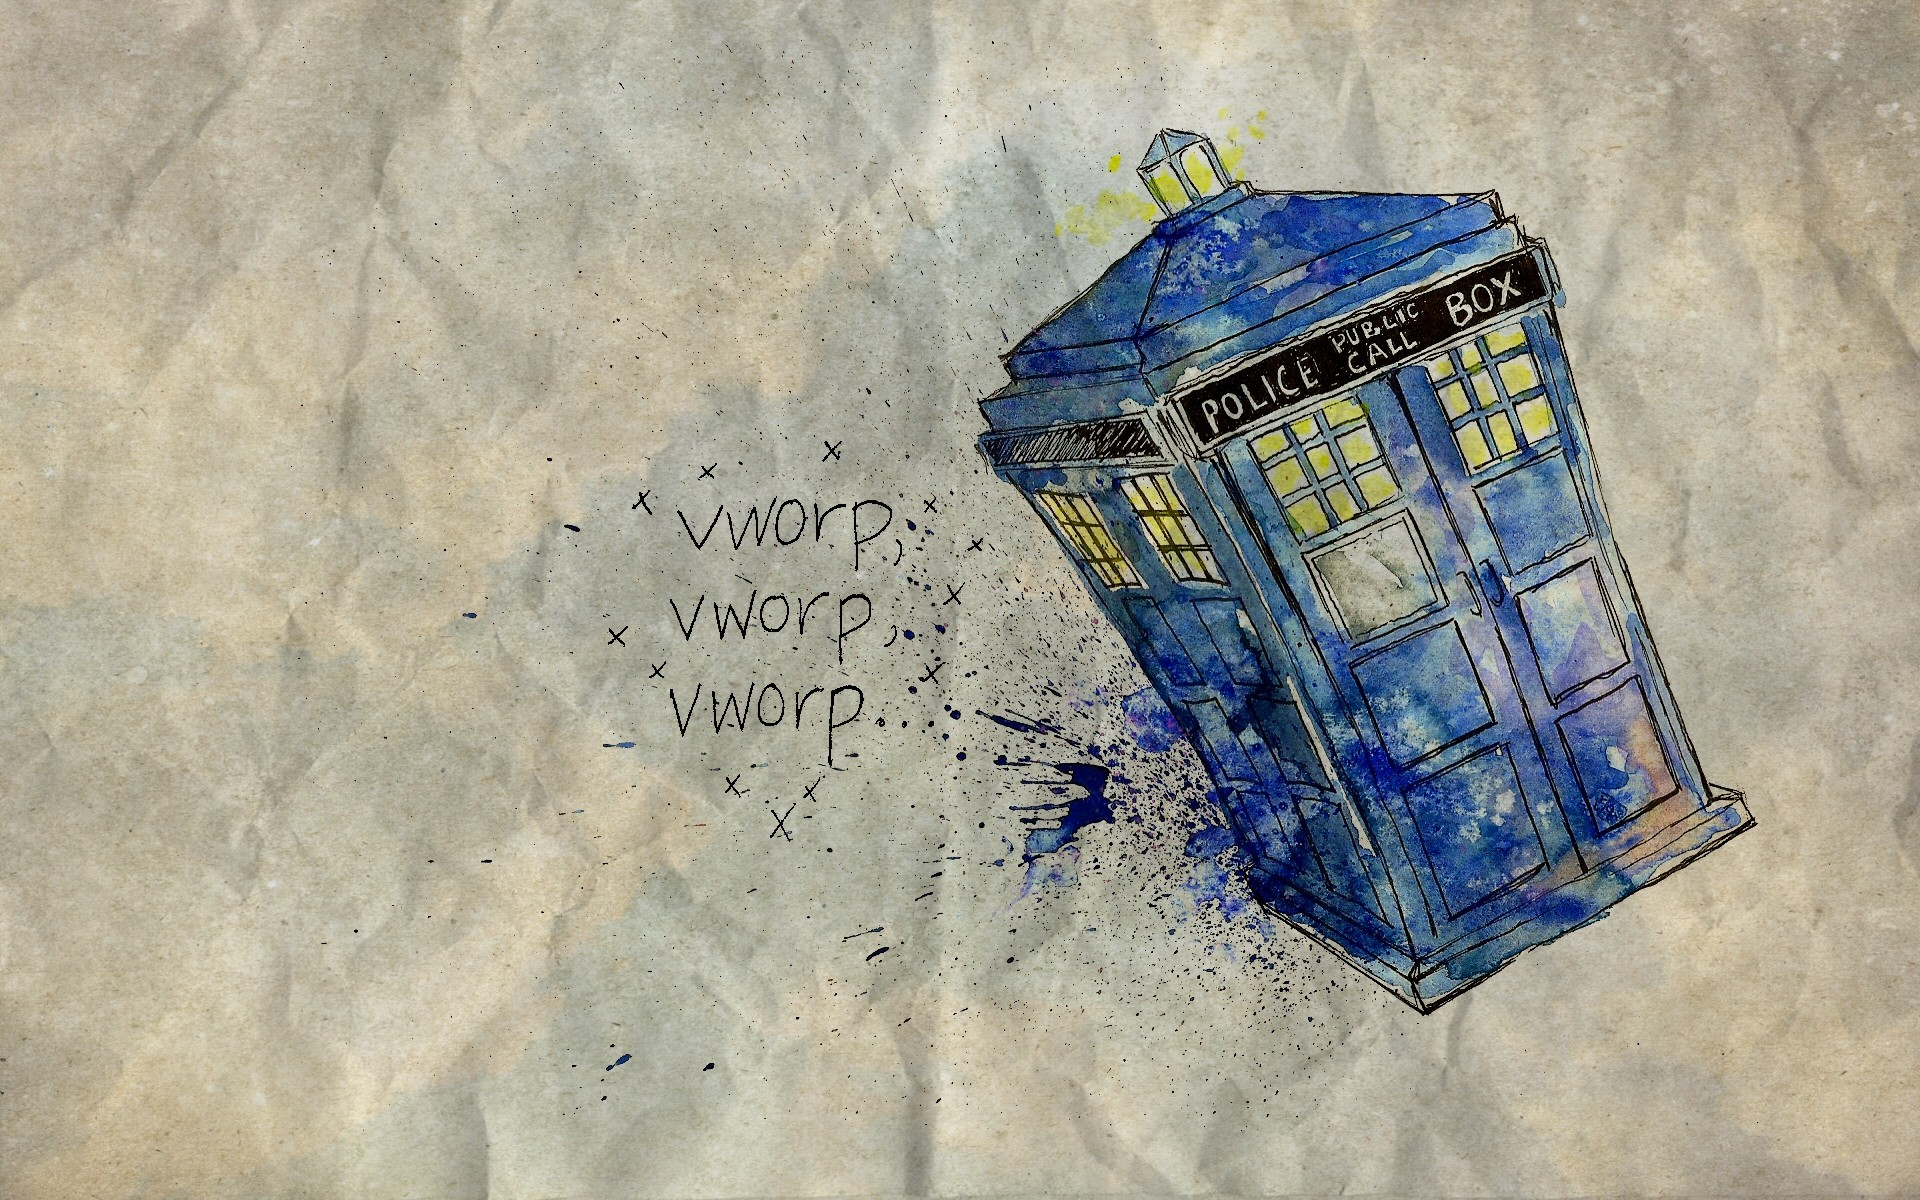 Doctor Who Wallpapers ○♢○